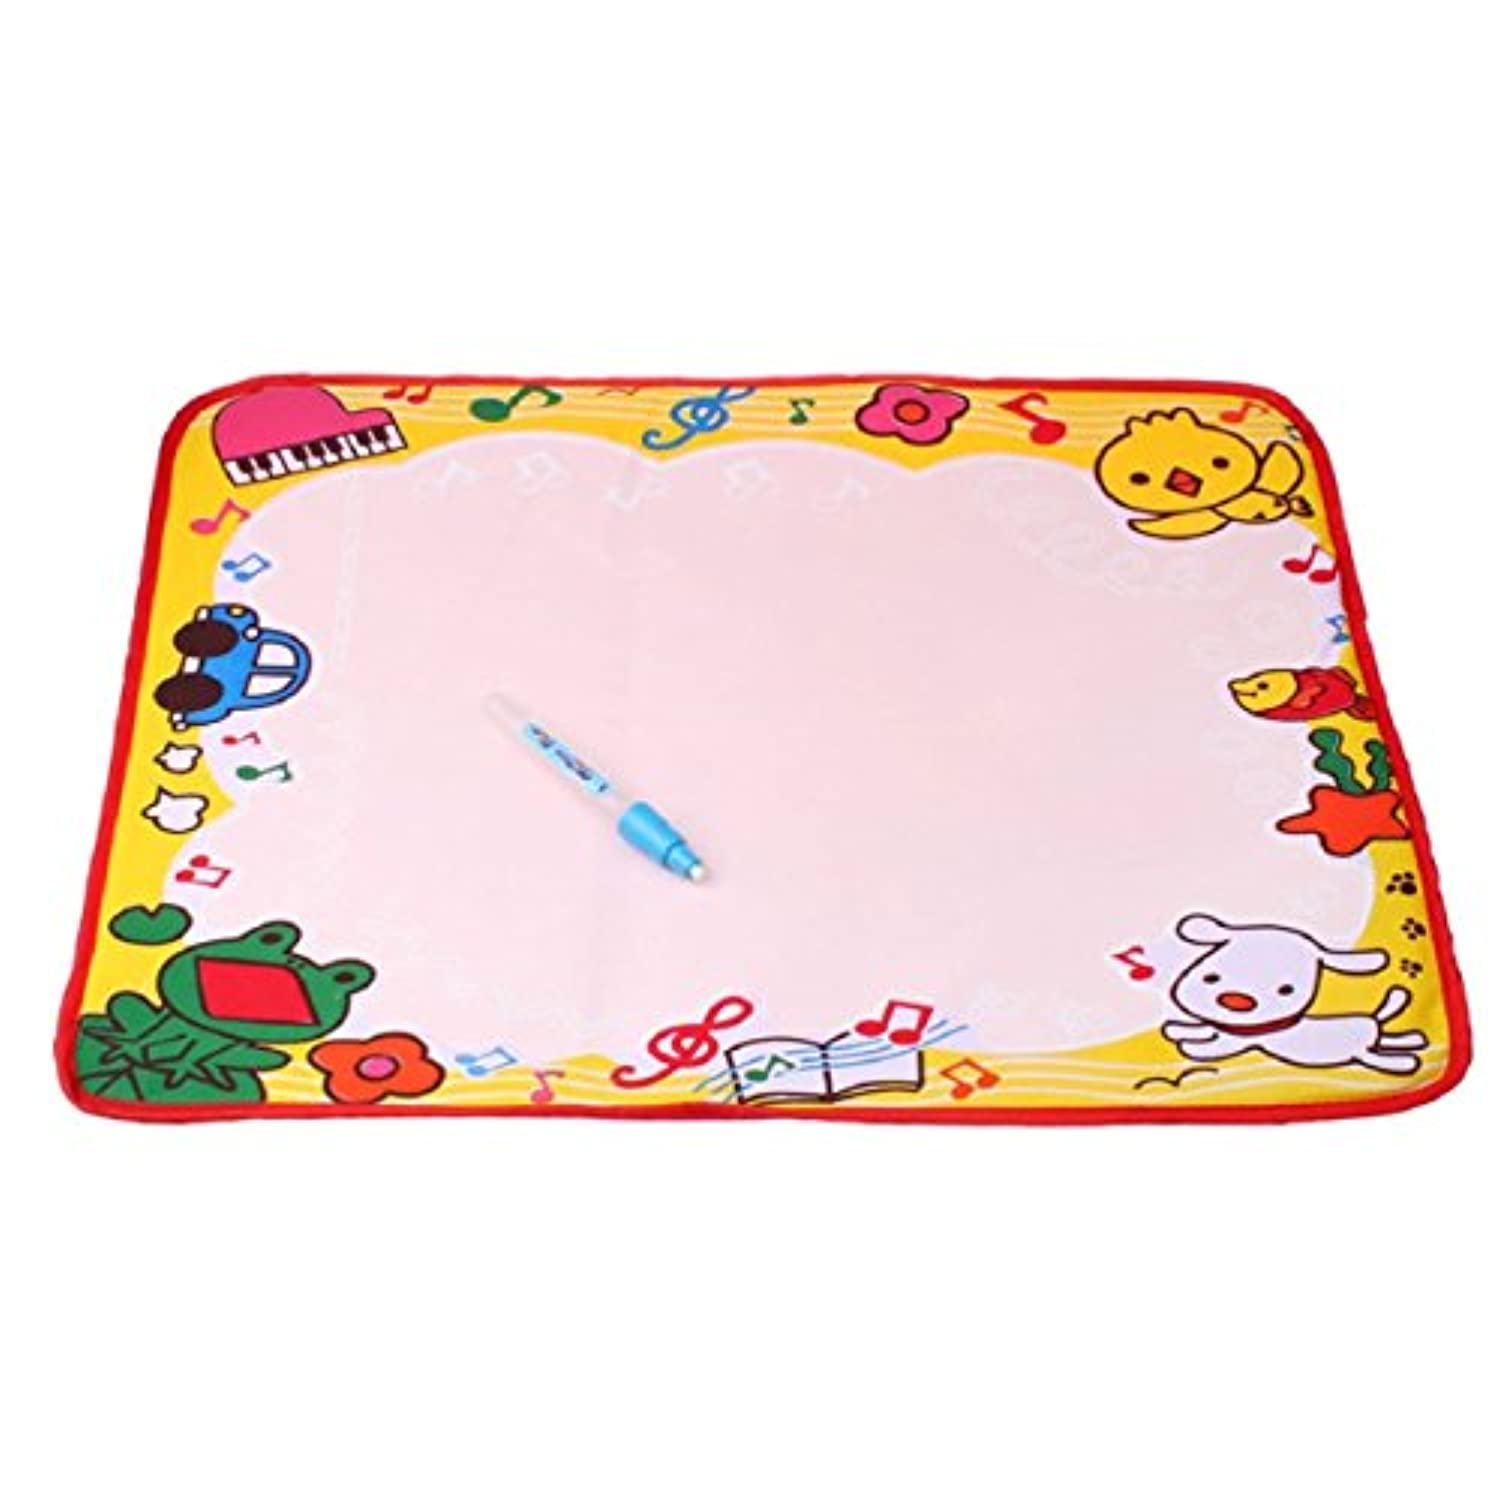 Lookatool 48*36CM Water Drawing Painting Writing Mat Board Magic Pen Doodle Kids Toy Gift L